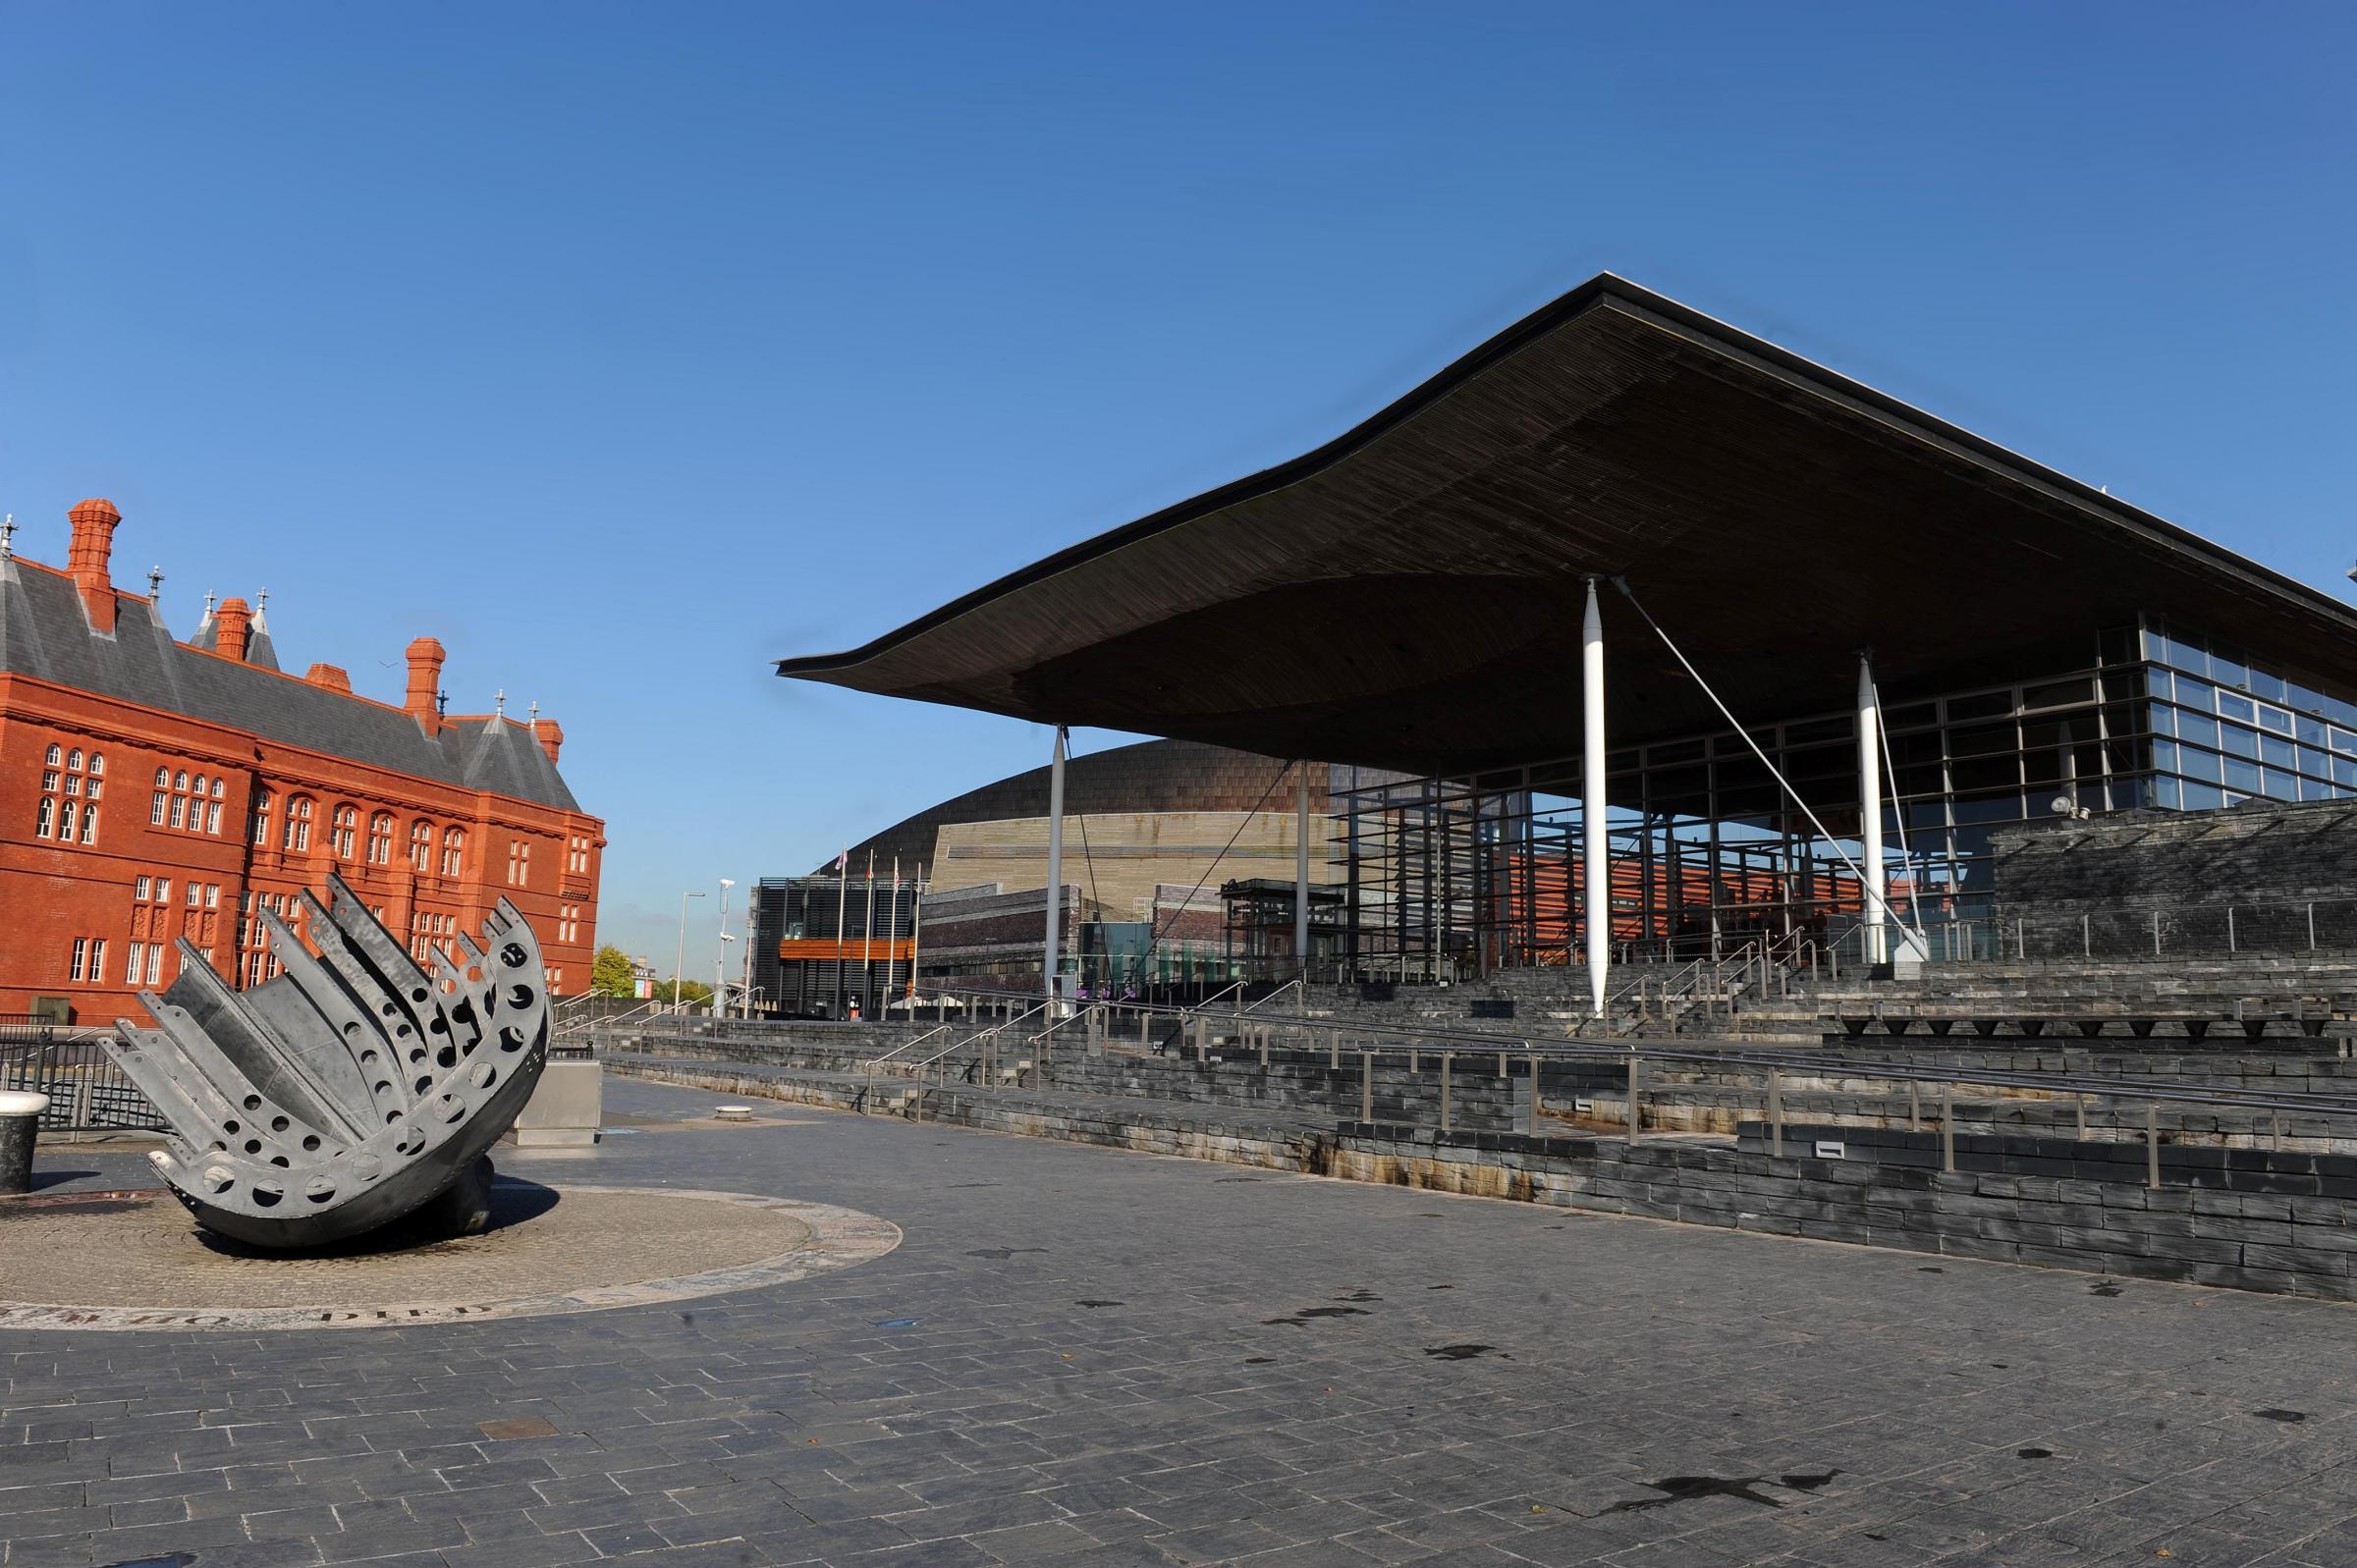 The Senedd and the old Coal exchange at Cardiff Bay.